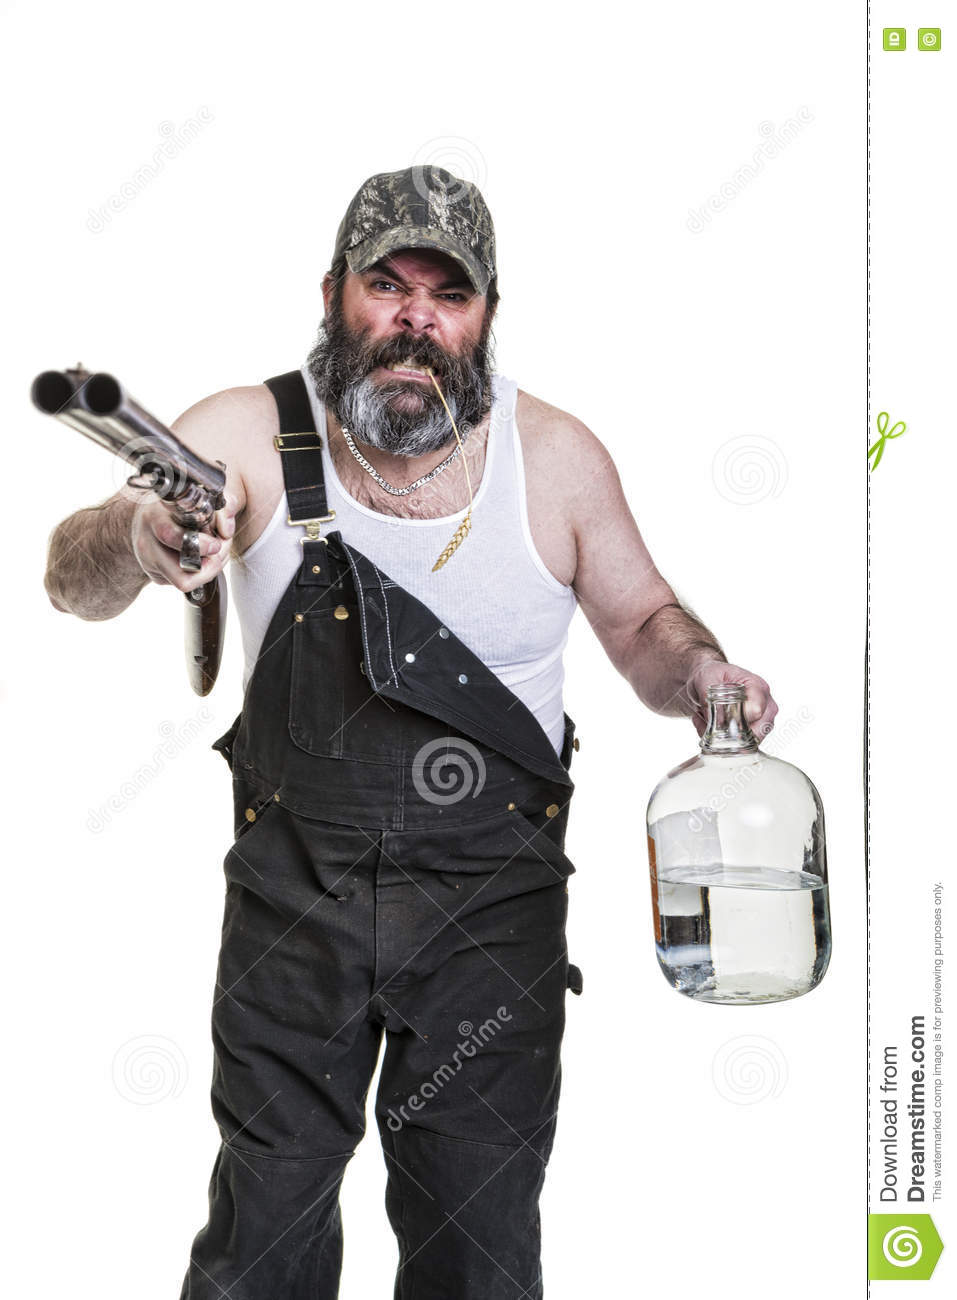 Angry Drinking Redneck stock image. Image of double, expression - 73201713